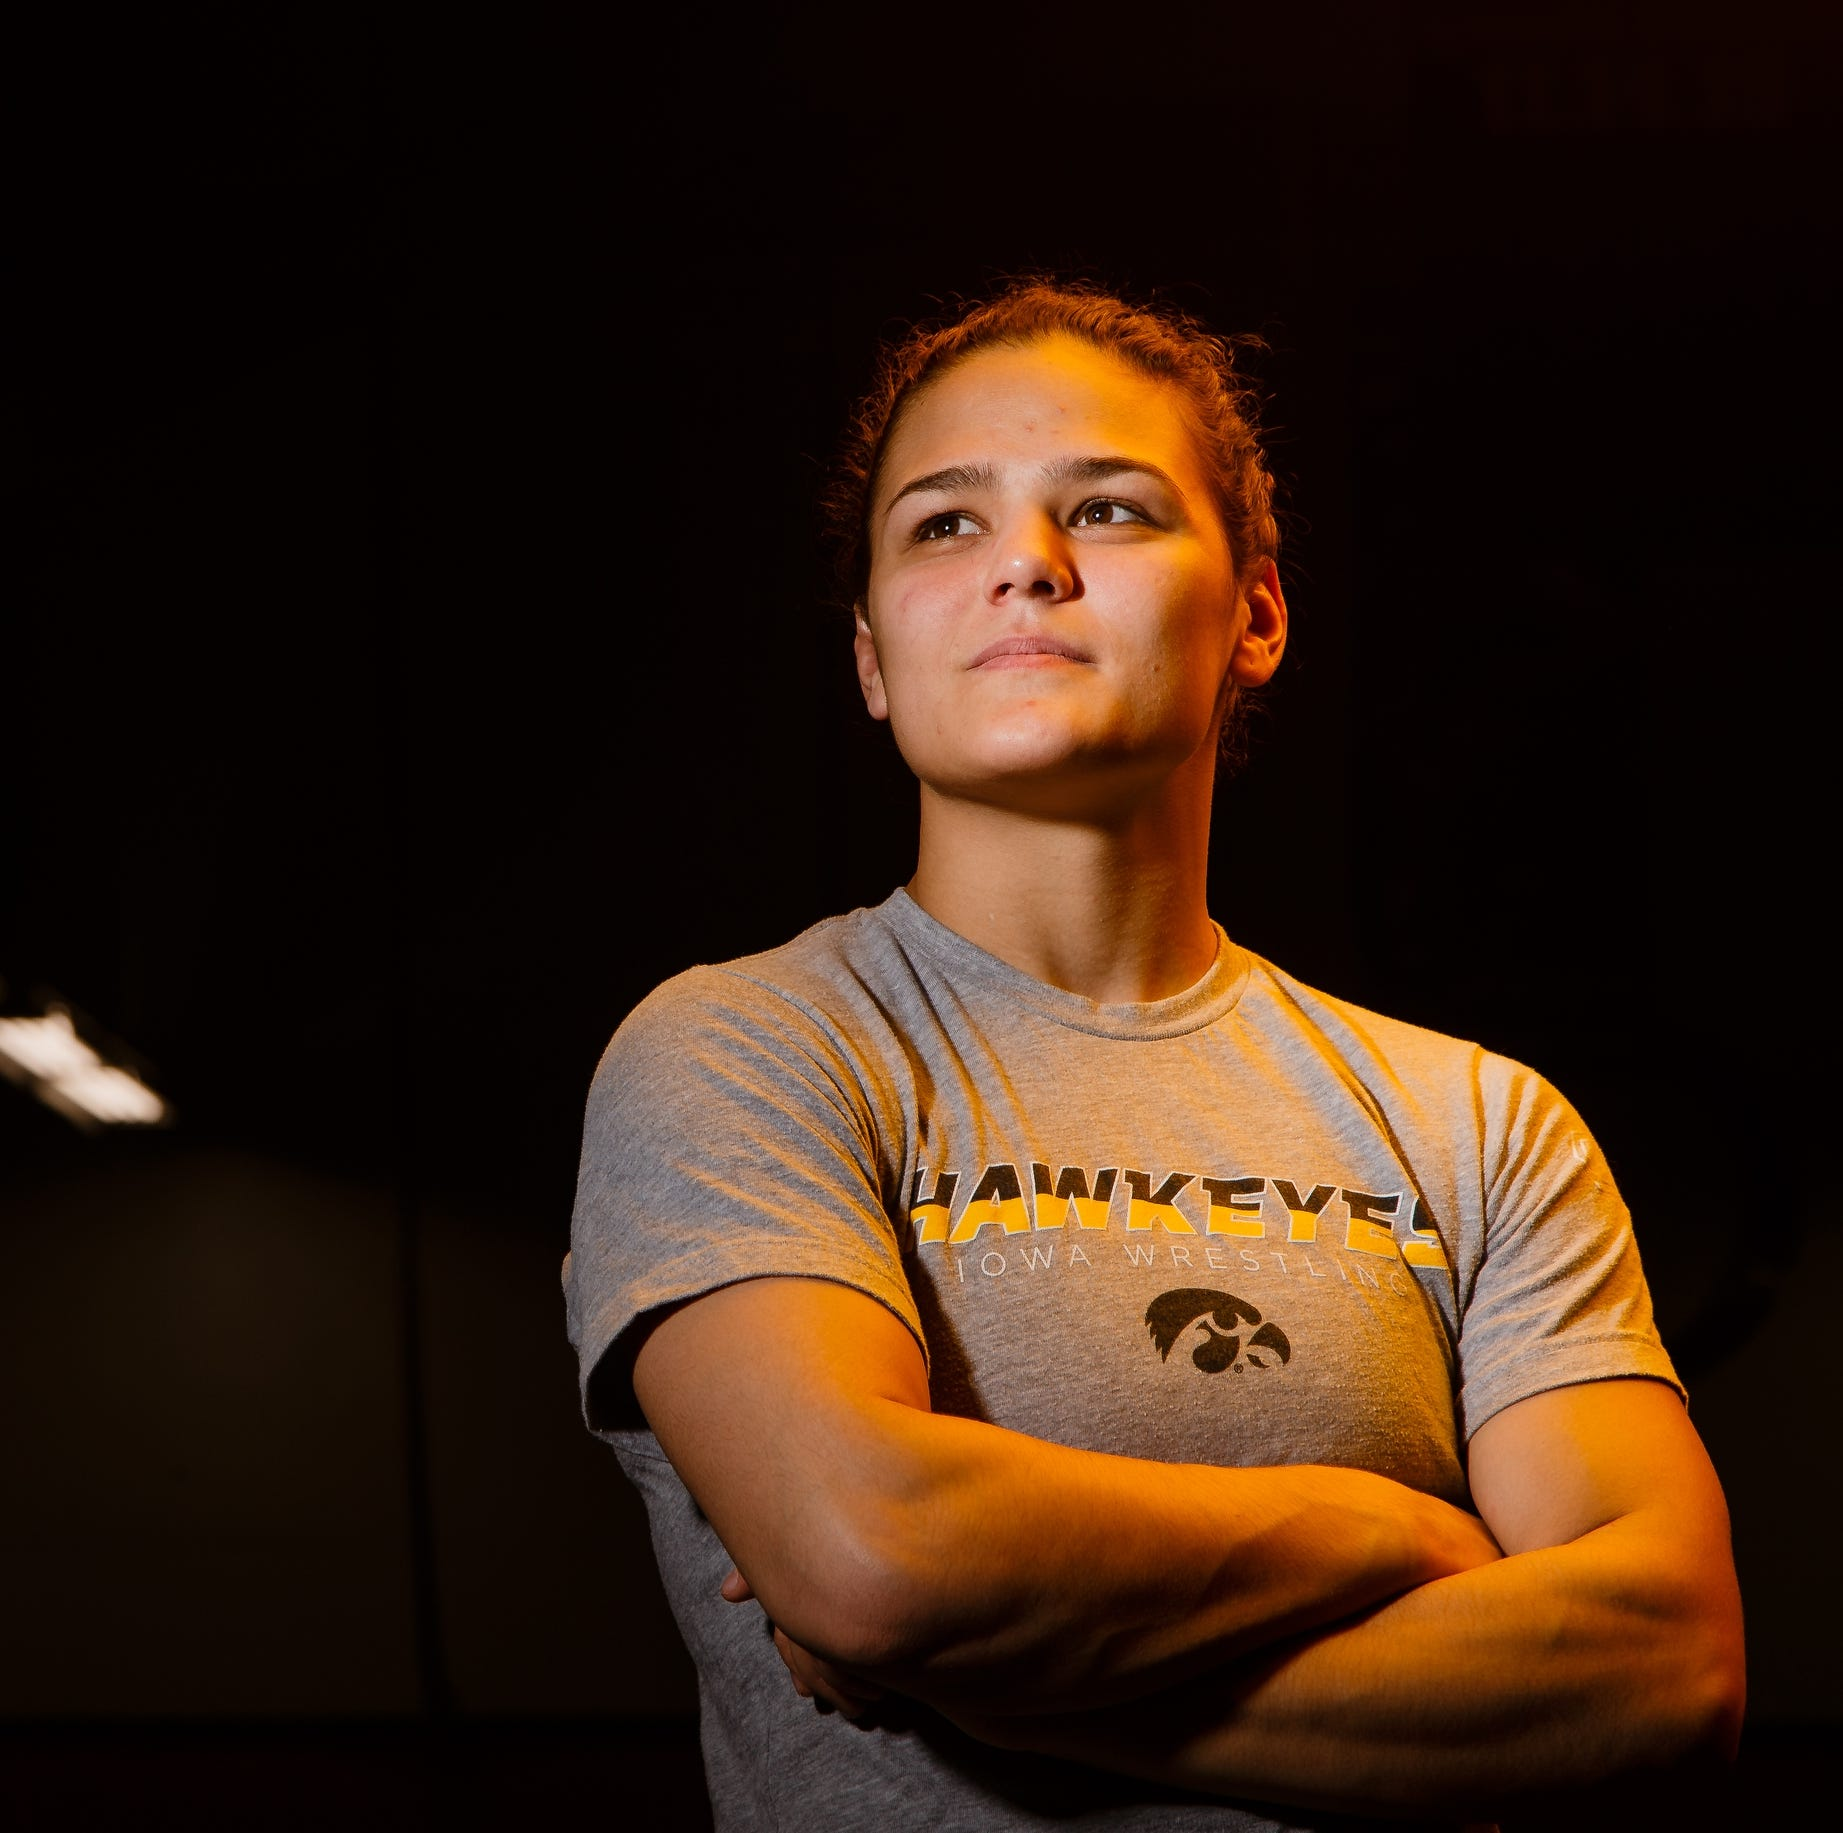 'Iowa is home': Kayla Miracle aiming for next step in career with Hawkeye Wrestling Club